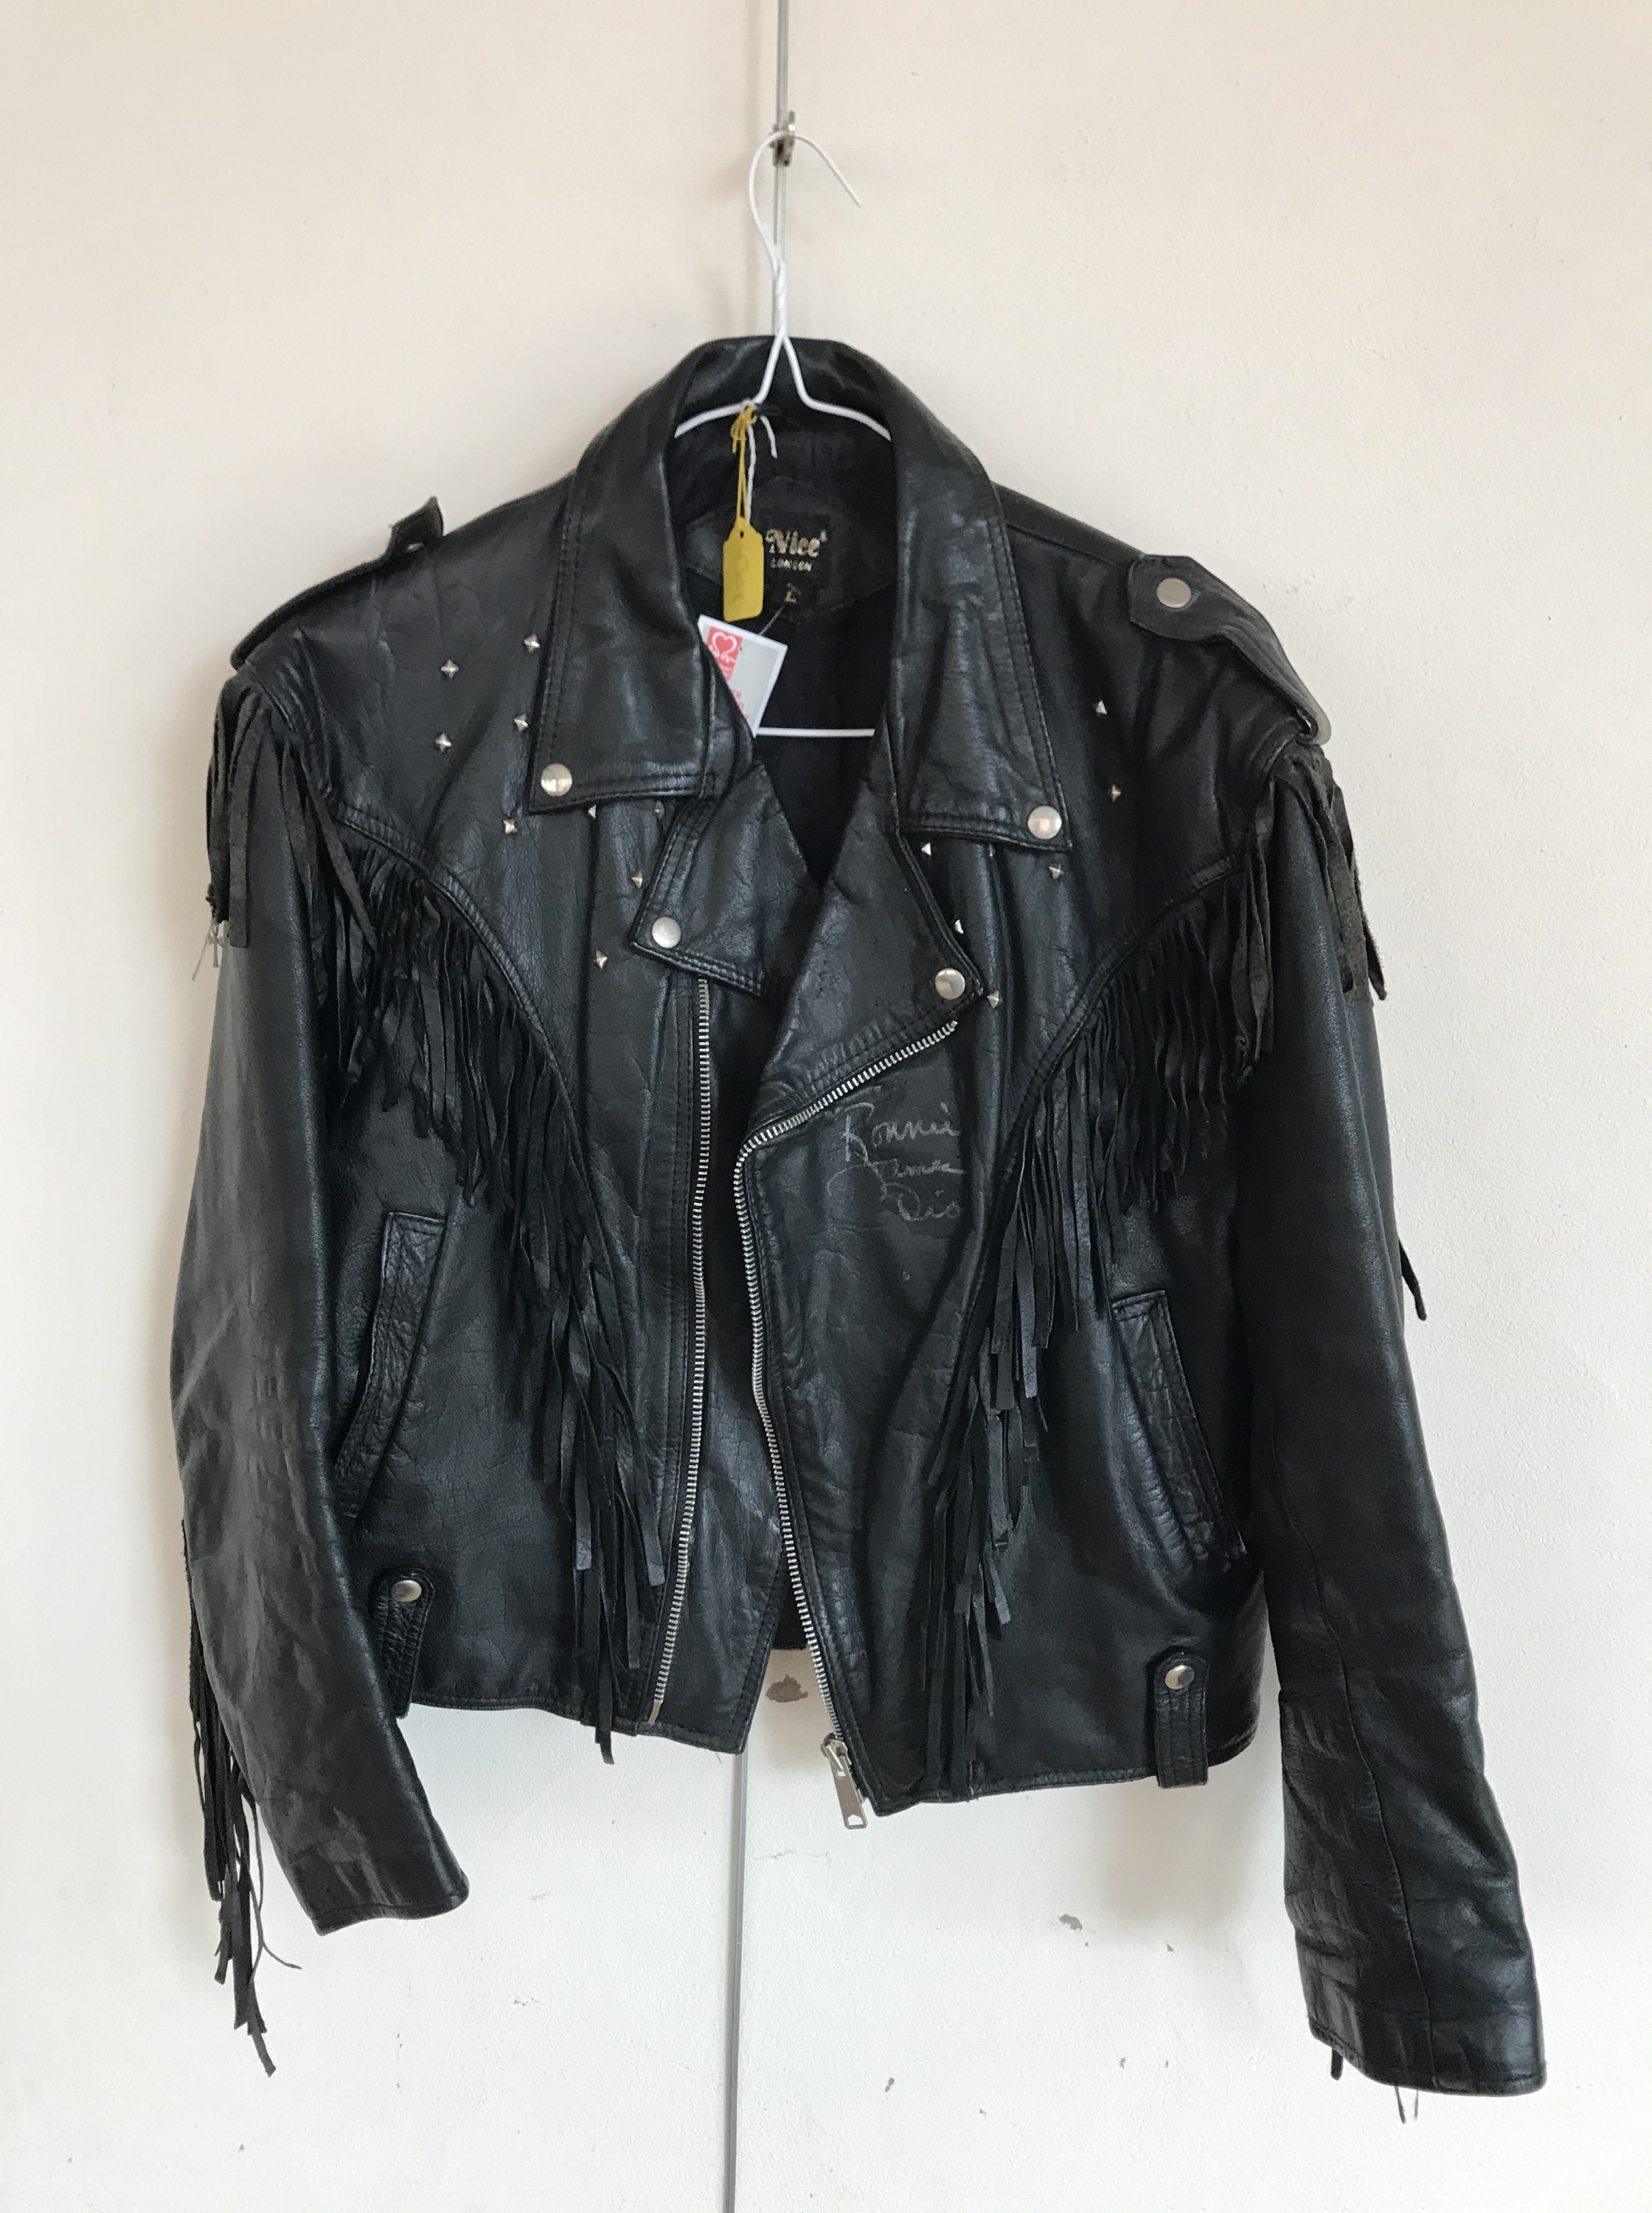 Lot 53 - [Autographs] A fringed leather motorcycle jacket signed by Ronnie James Dio of Black Sabbath /